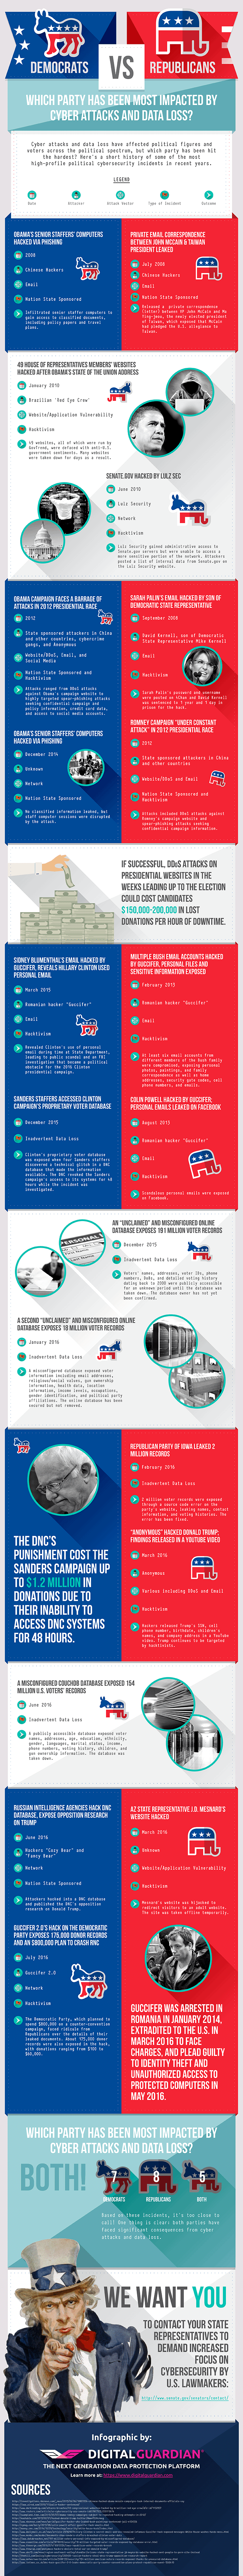 Political Hacks and Data Loss Infographic